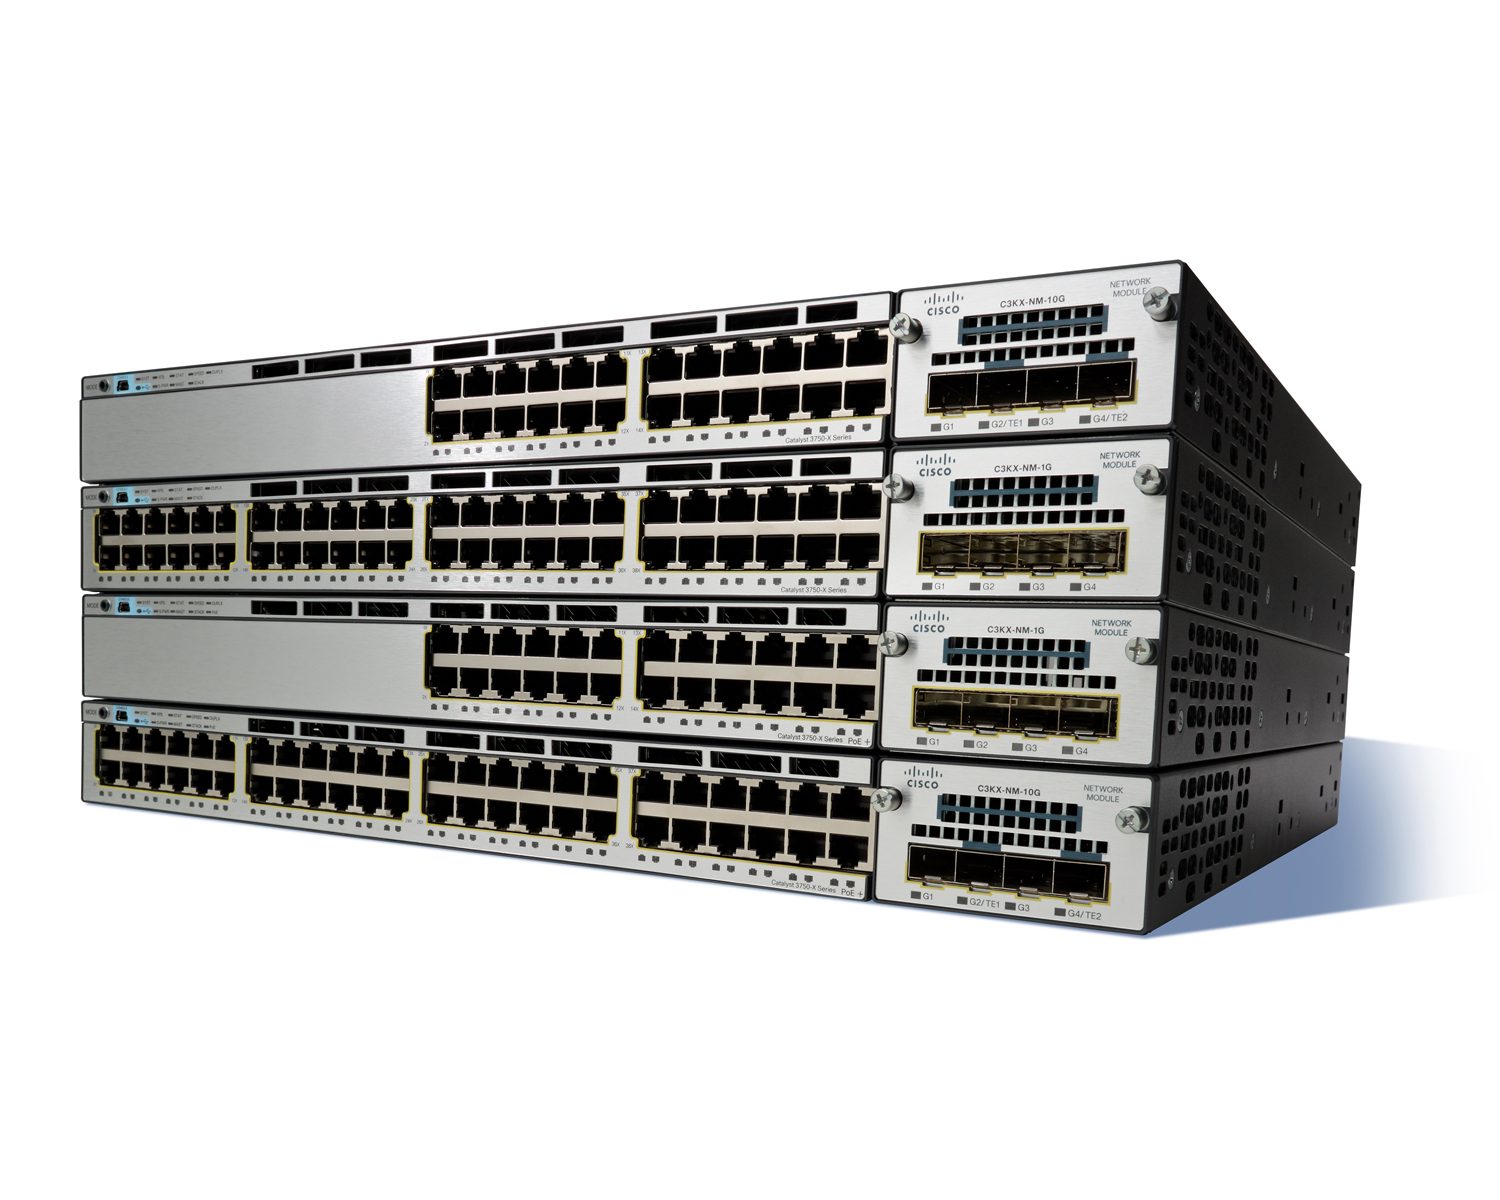 Catalyst 4500 X Switch Series